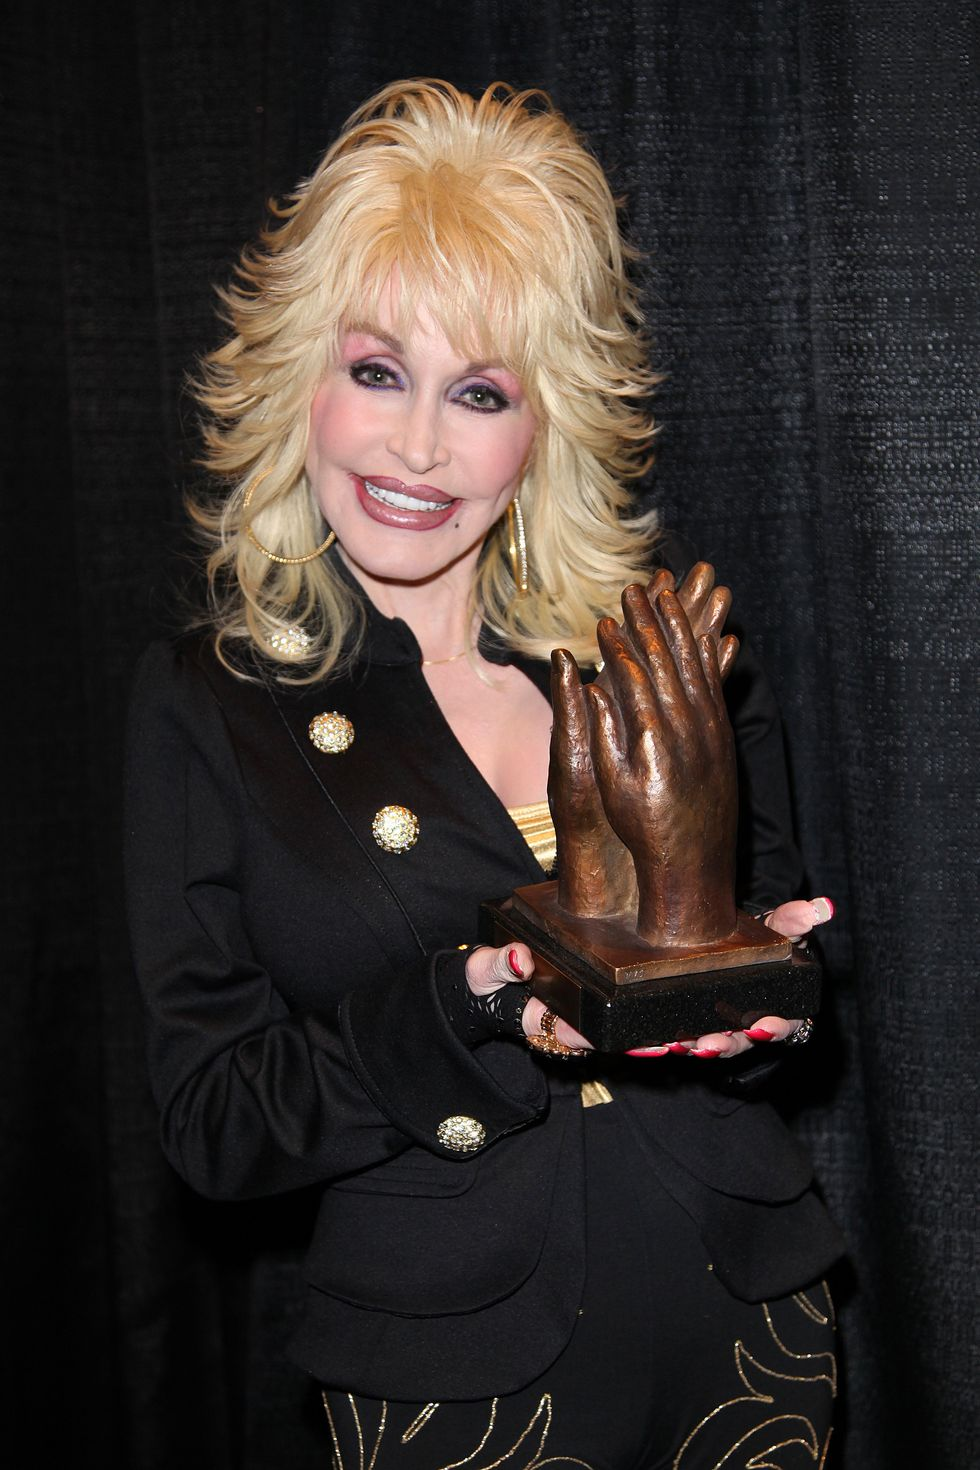 The #DollyPartonChallenge Is Taking Over The Internet